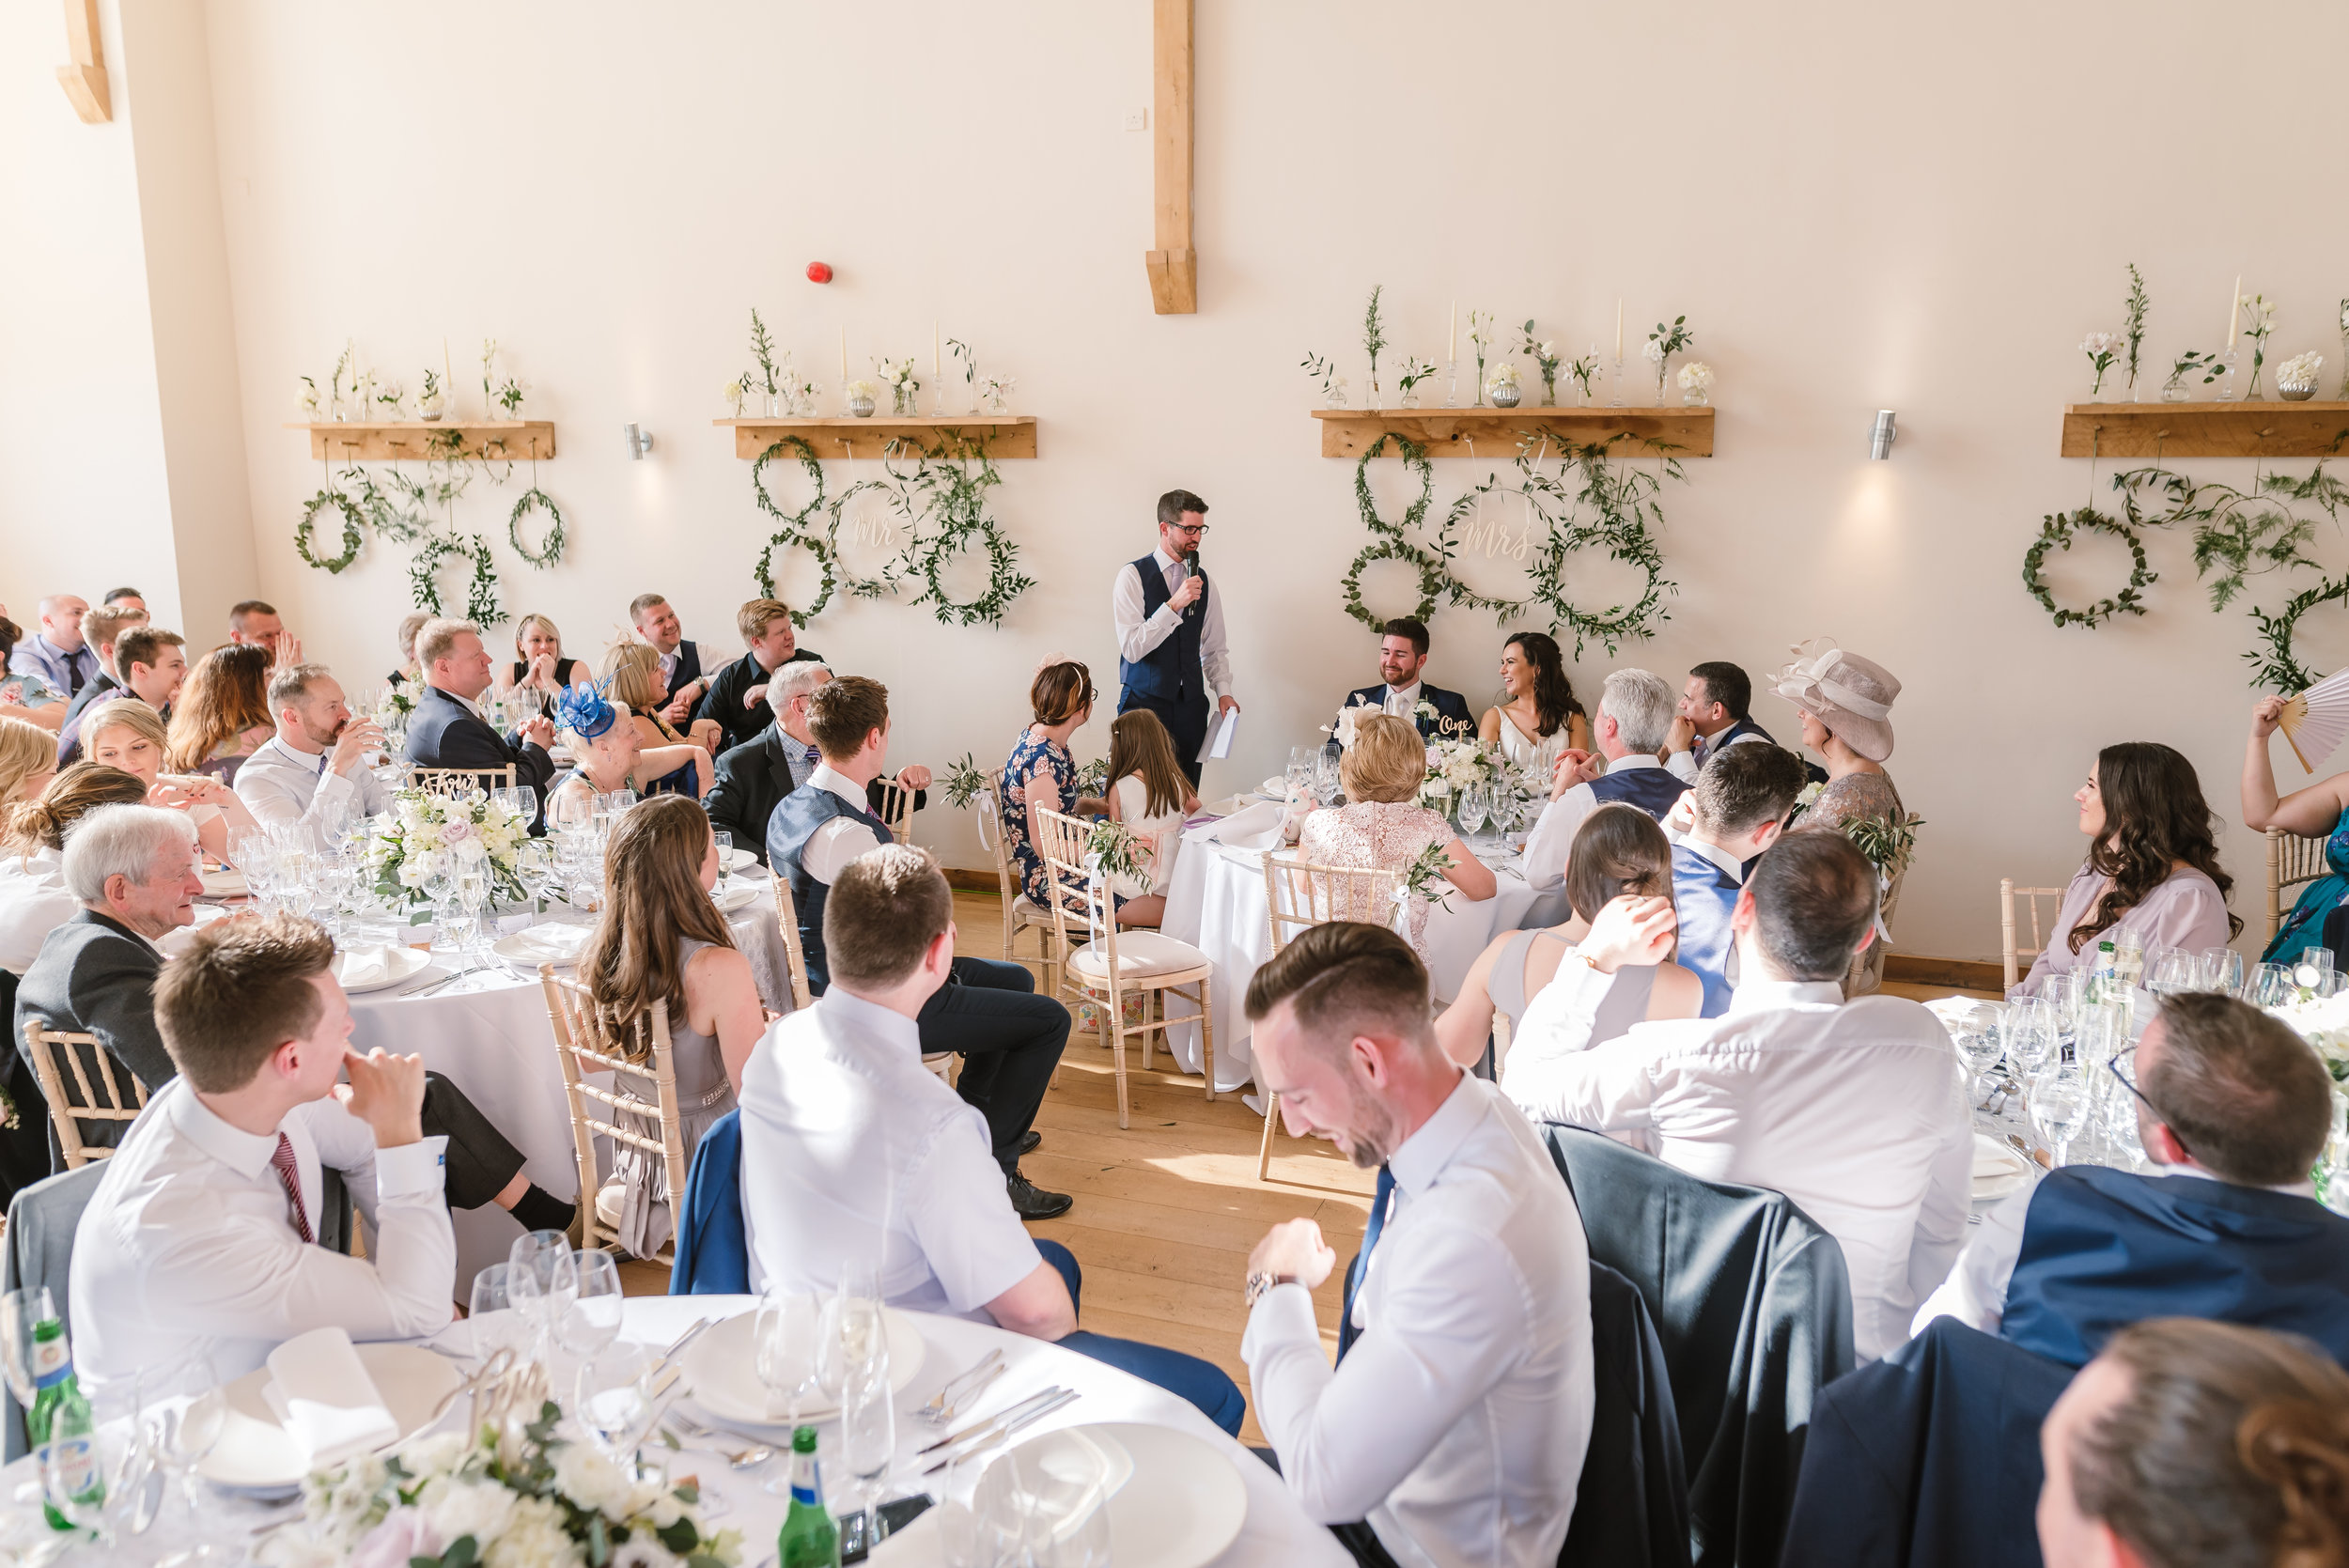 Sarah-Fishlock-Photography : Hampshire-wedding-photographer-hampshire : fleet-wedding-photographer-fleet : Millbridge-Court-Wedding-Photographer : Millbridge-Court-Wedding-Venue : Surrey-wedding-venue-1172.jpg